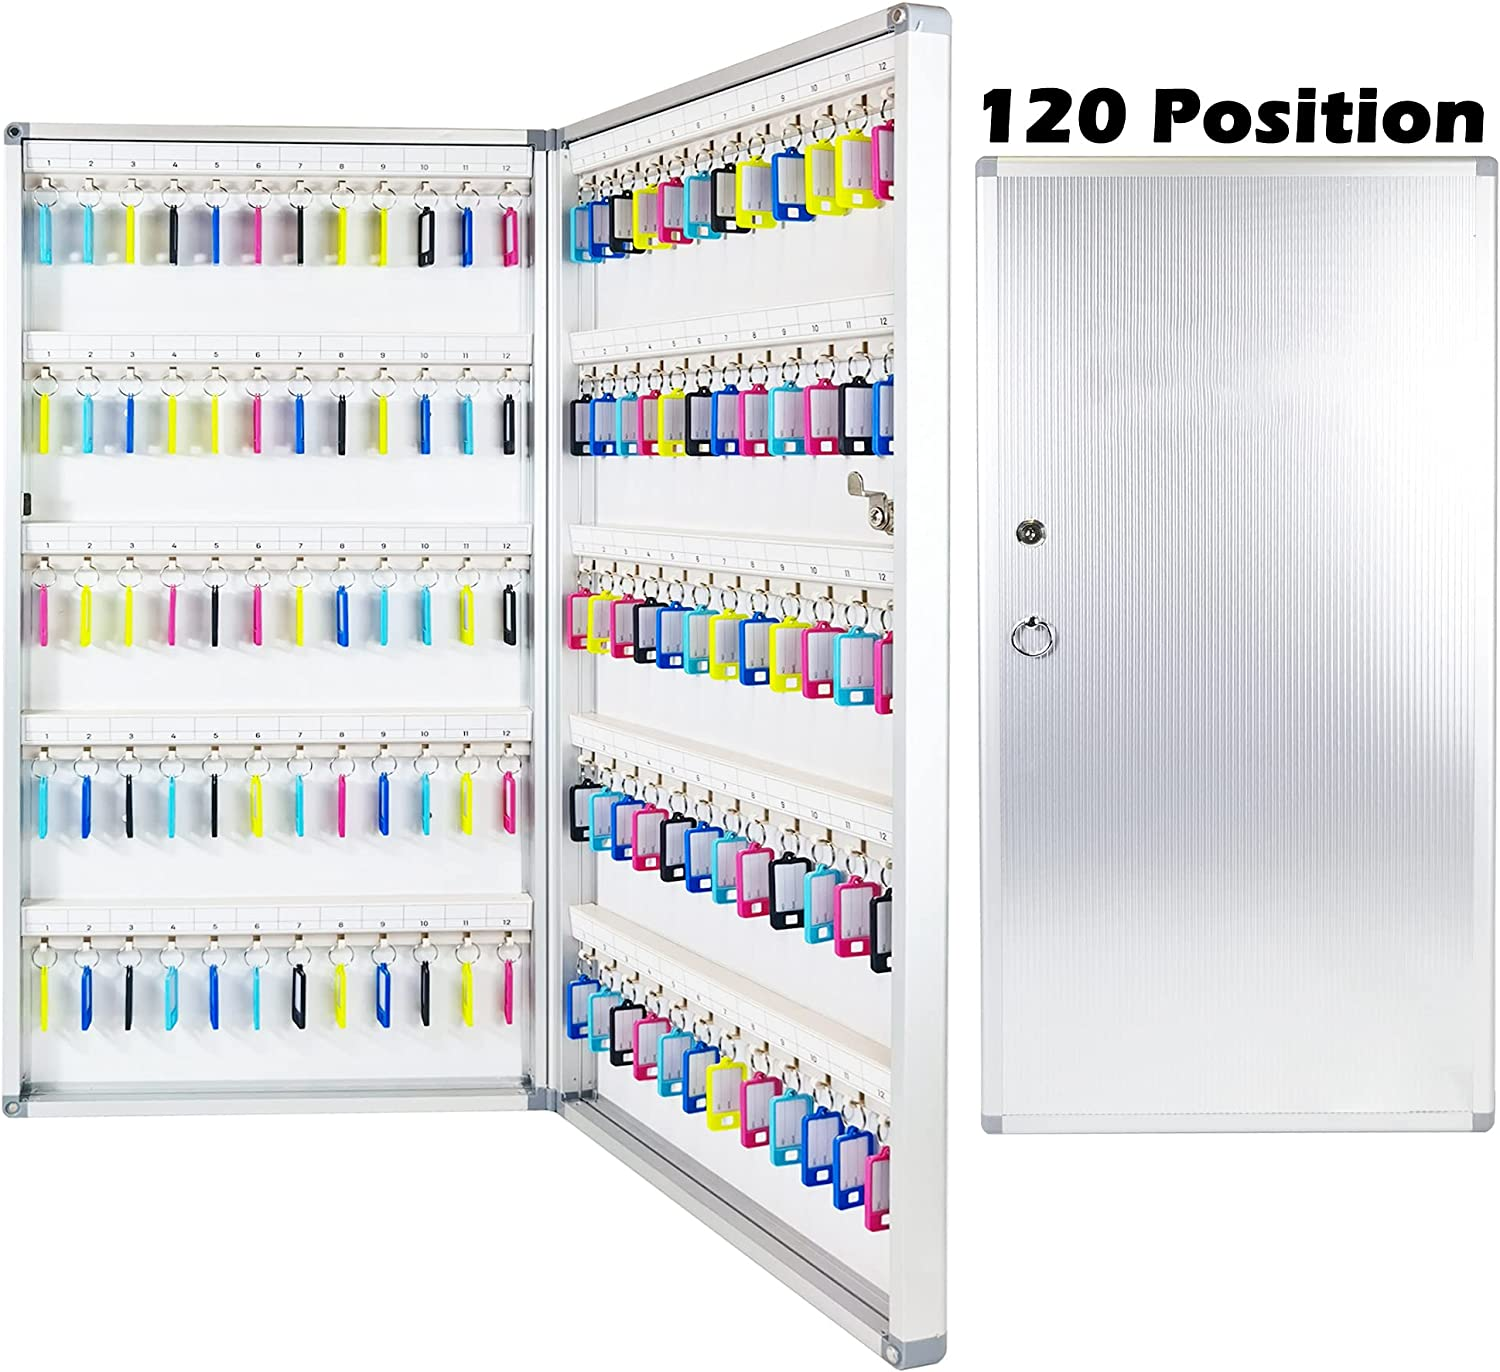 Prolee Max 78% OFF Key Box Wall Mount Max 46% OFF 72 Position 96 wi 120 for